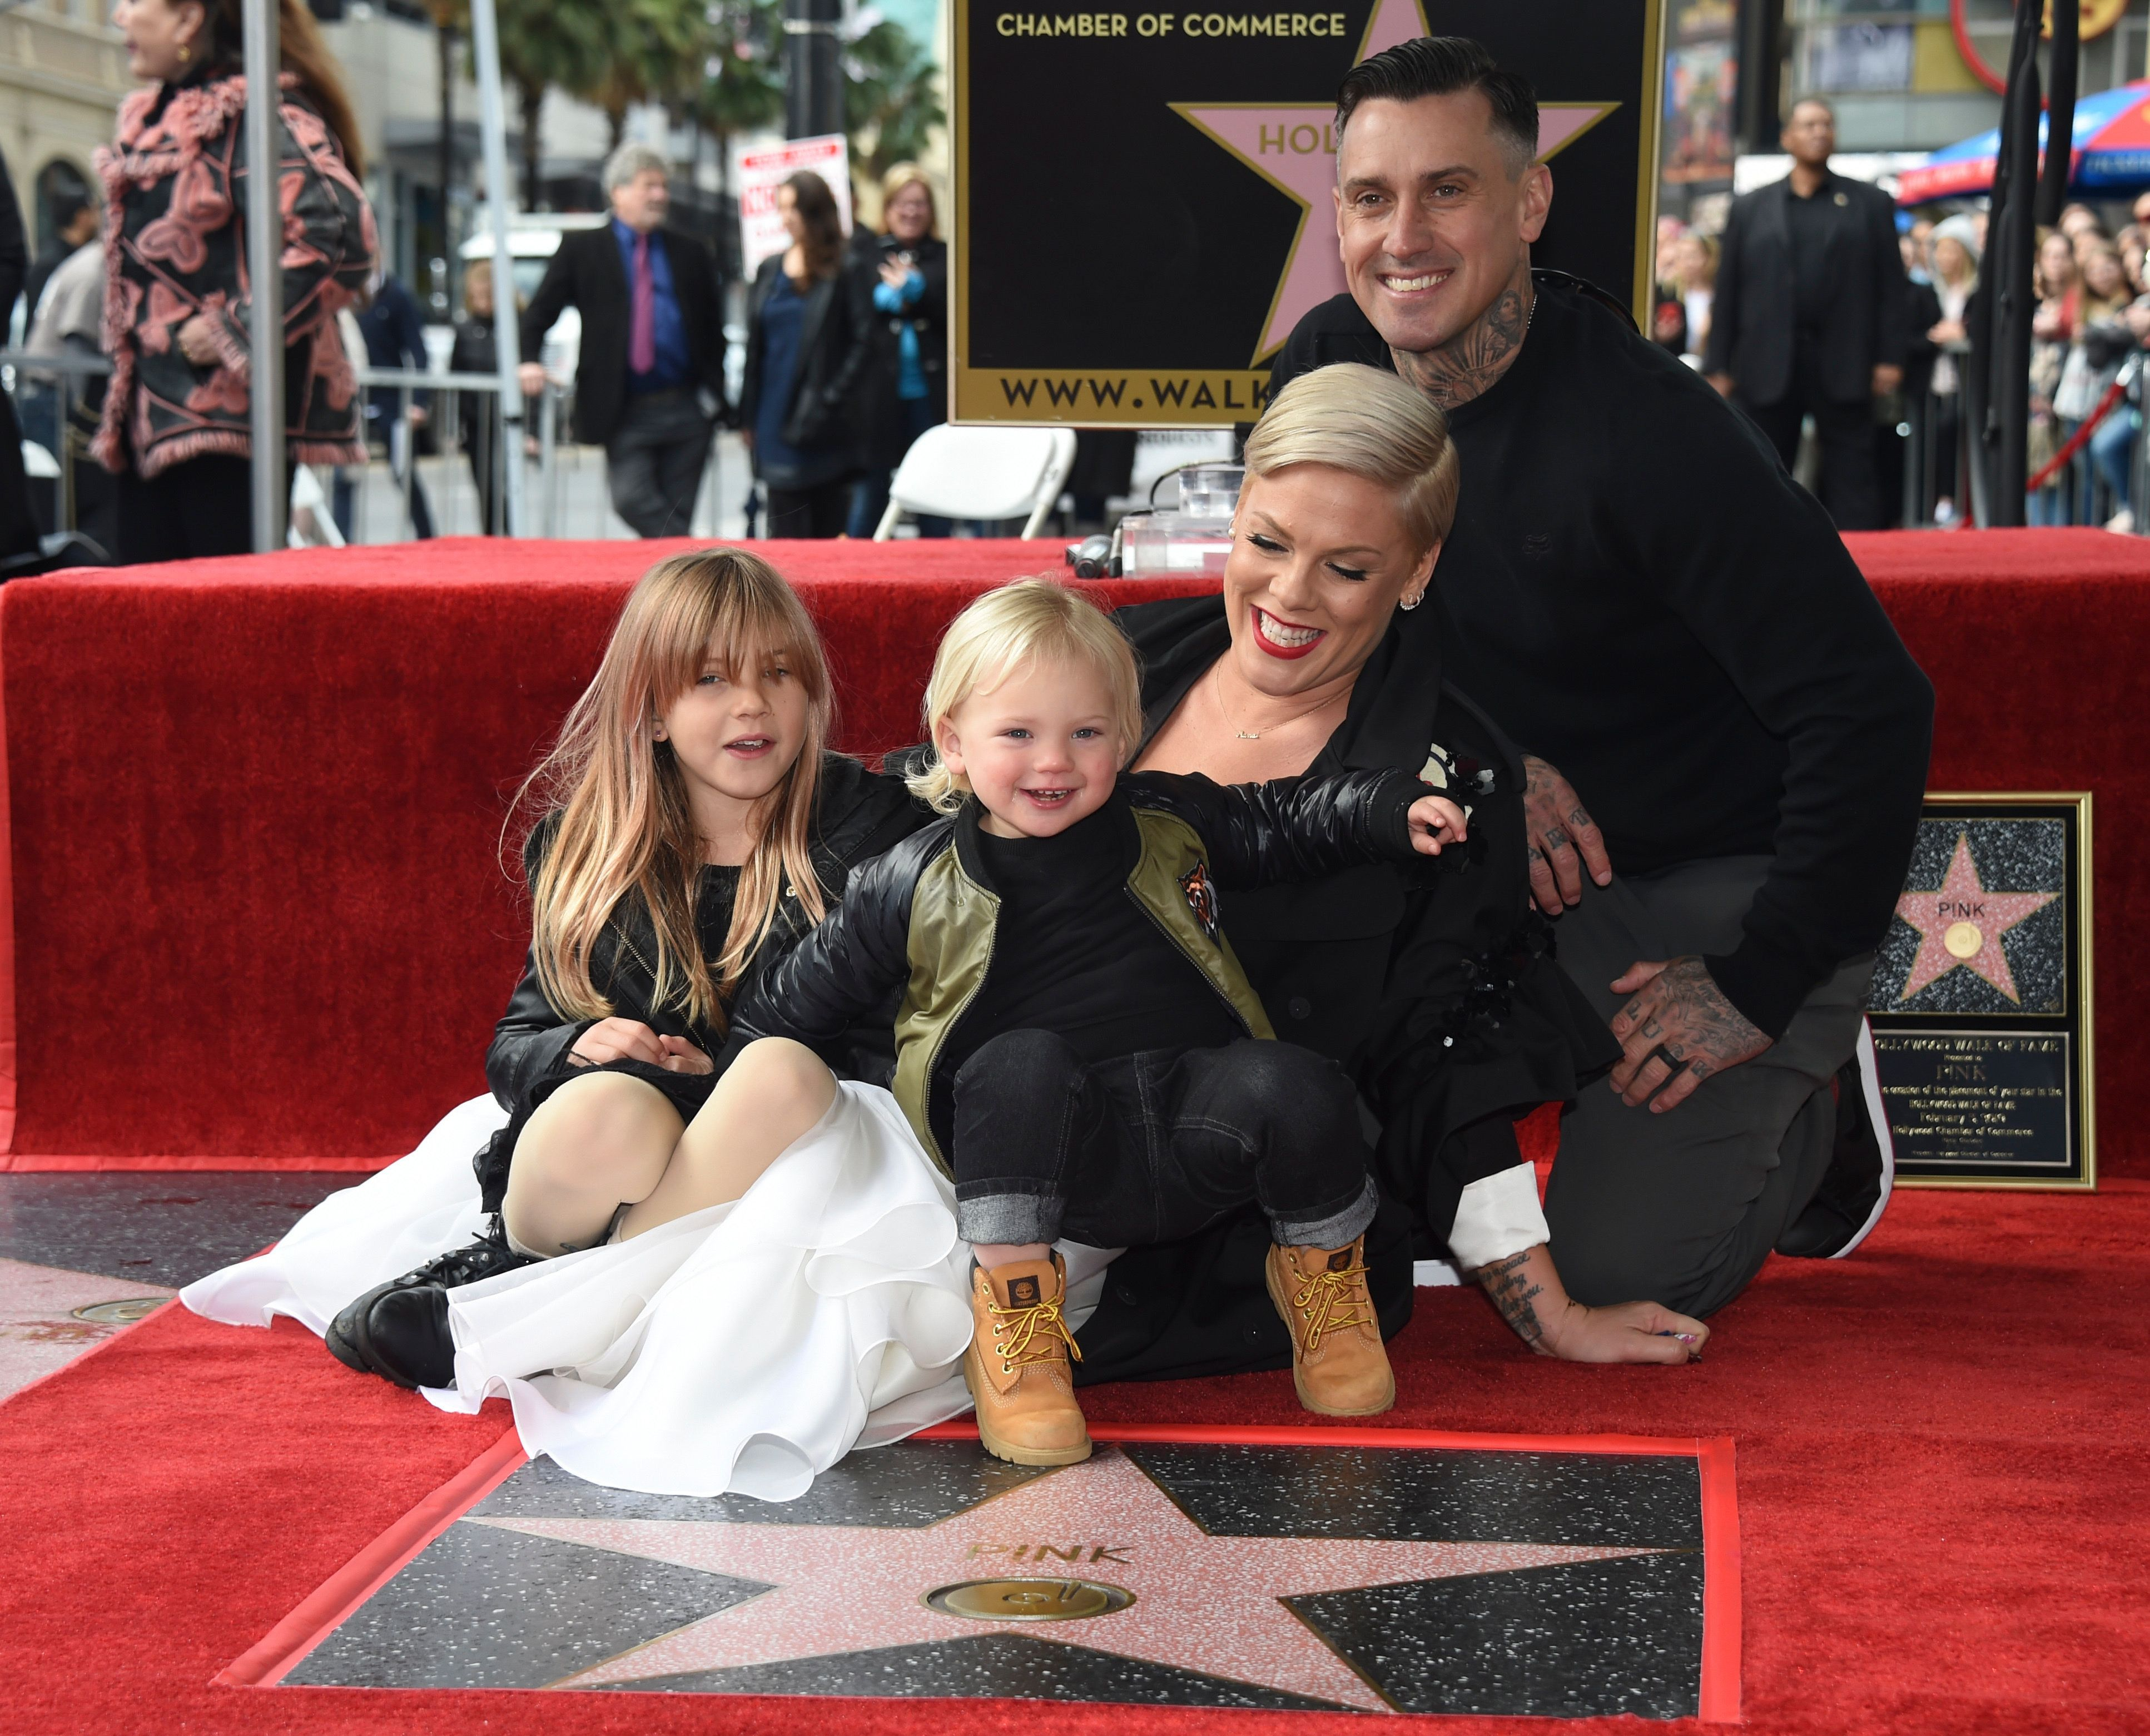 Pink poses with her husband Carey Hart, and children Willow Sage, left, and Jameson at a ceremony honoring Pink with a star on the Hollywood Walk of Fame on Tuesday, Feb. 5, 2019, in Los Angeles. (Photo by Phil McCarten/Invision/AP)